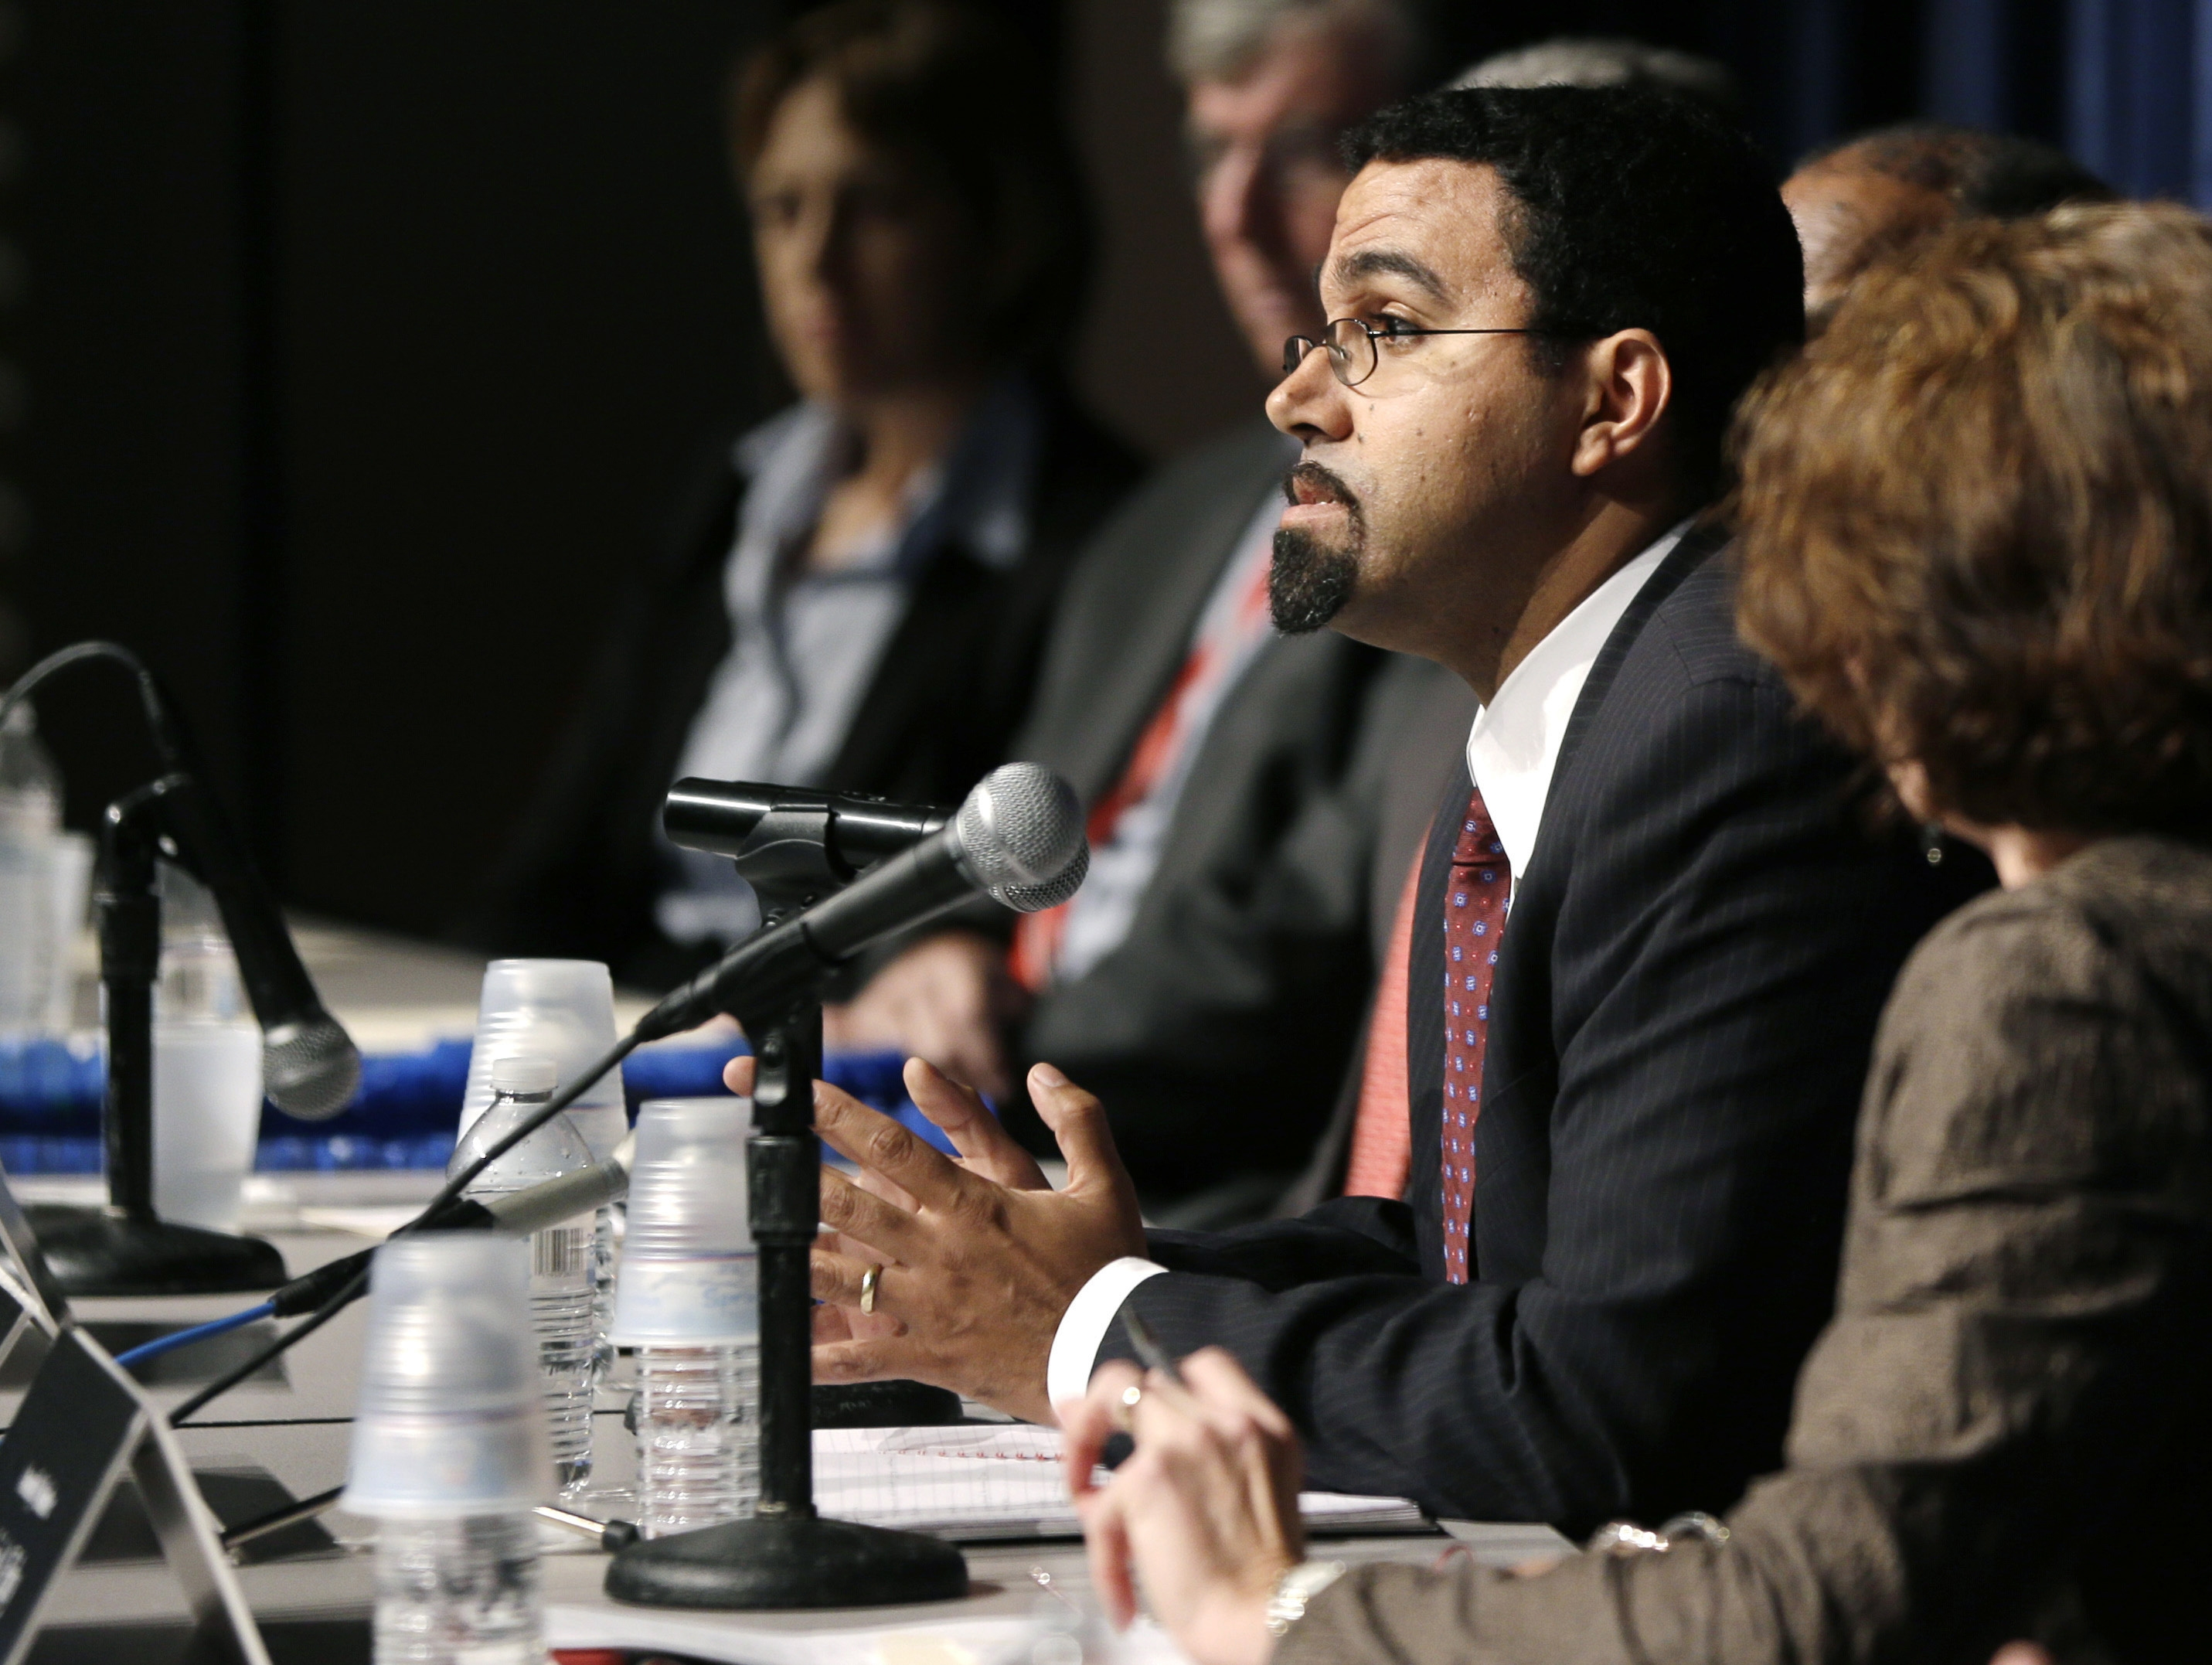 State Education Commissioner John B. King Jr. attends a forum on the new Common Core standards Thursday at a school in Albany. (AP photo)